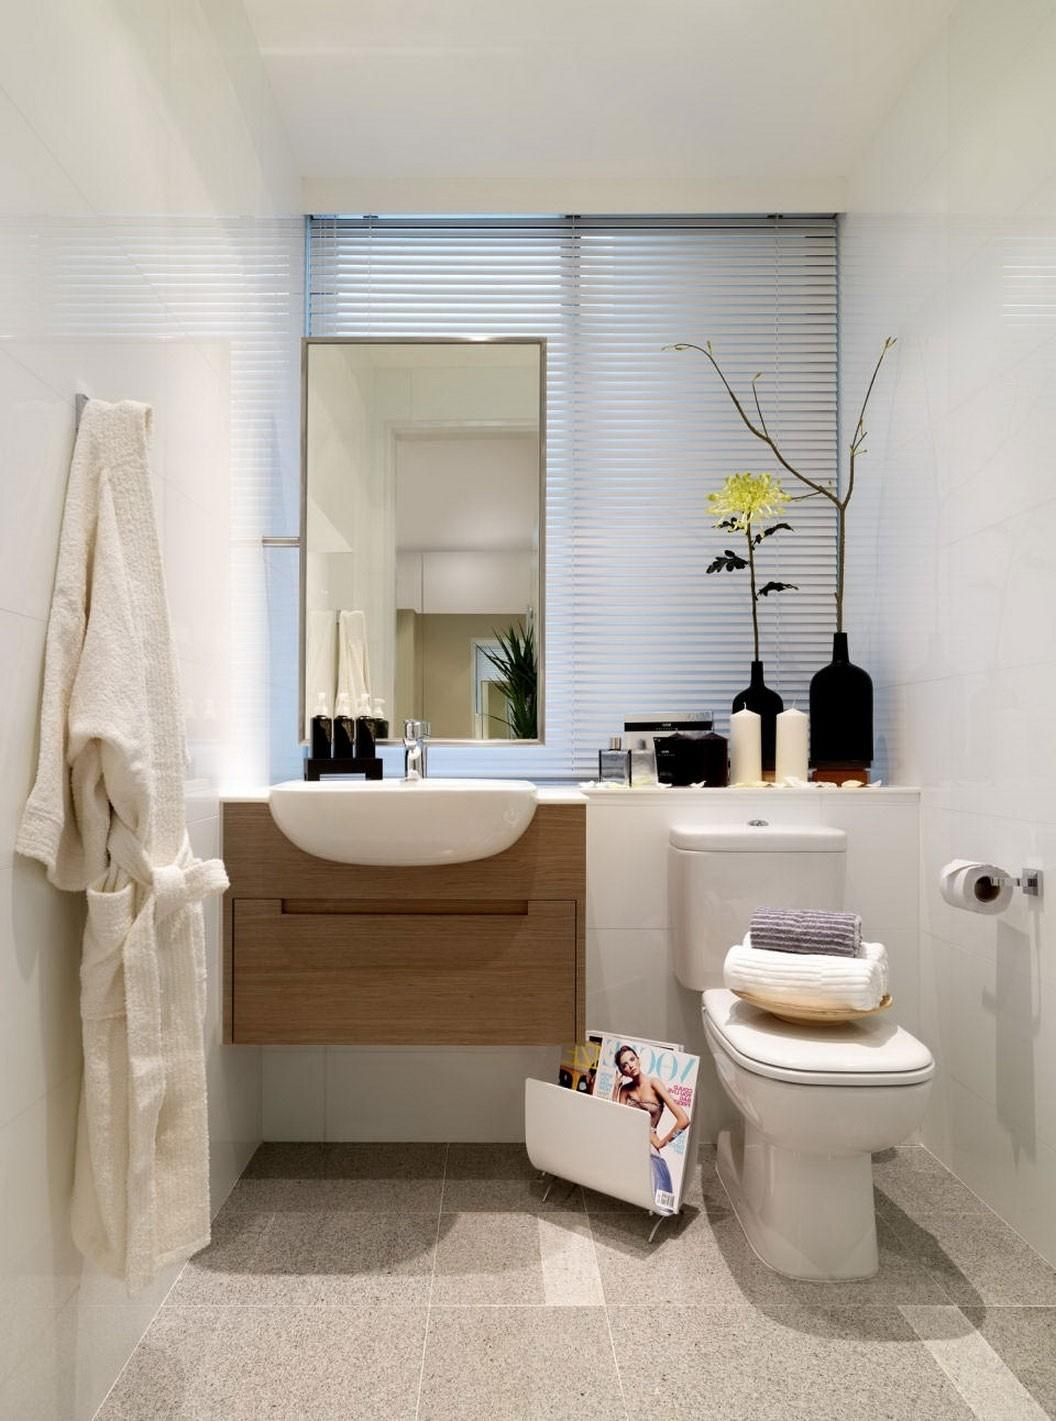 Bathroom Designs Ideas Can Try Small Spaces